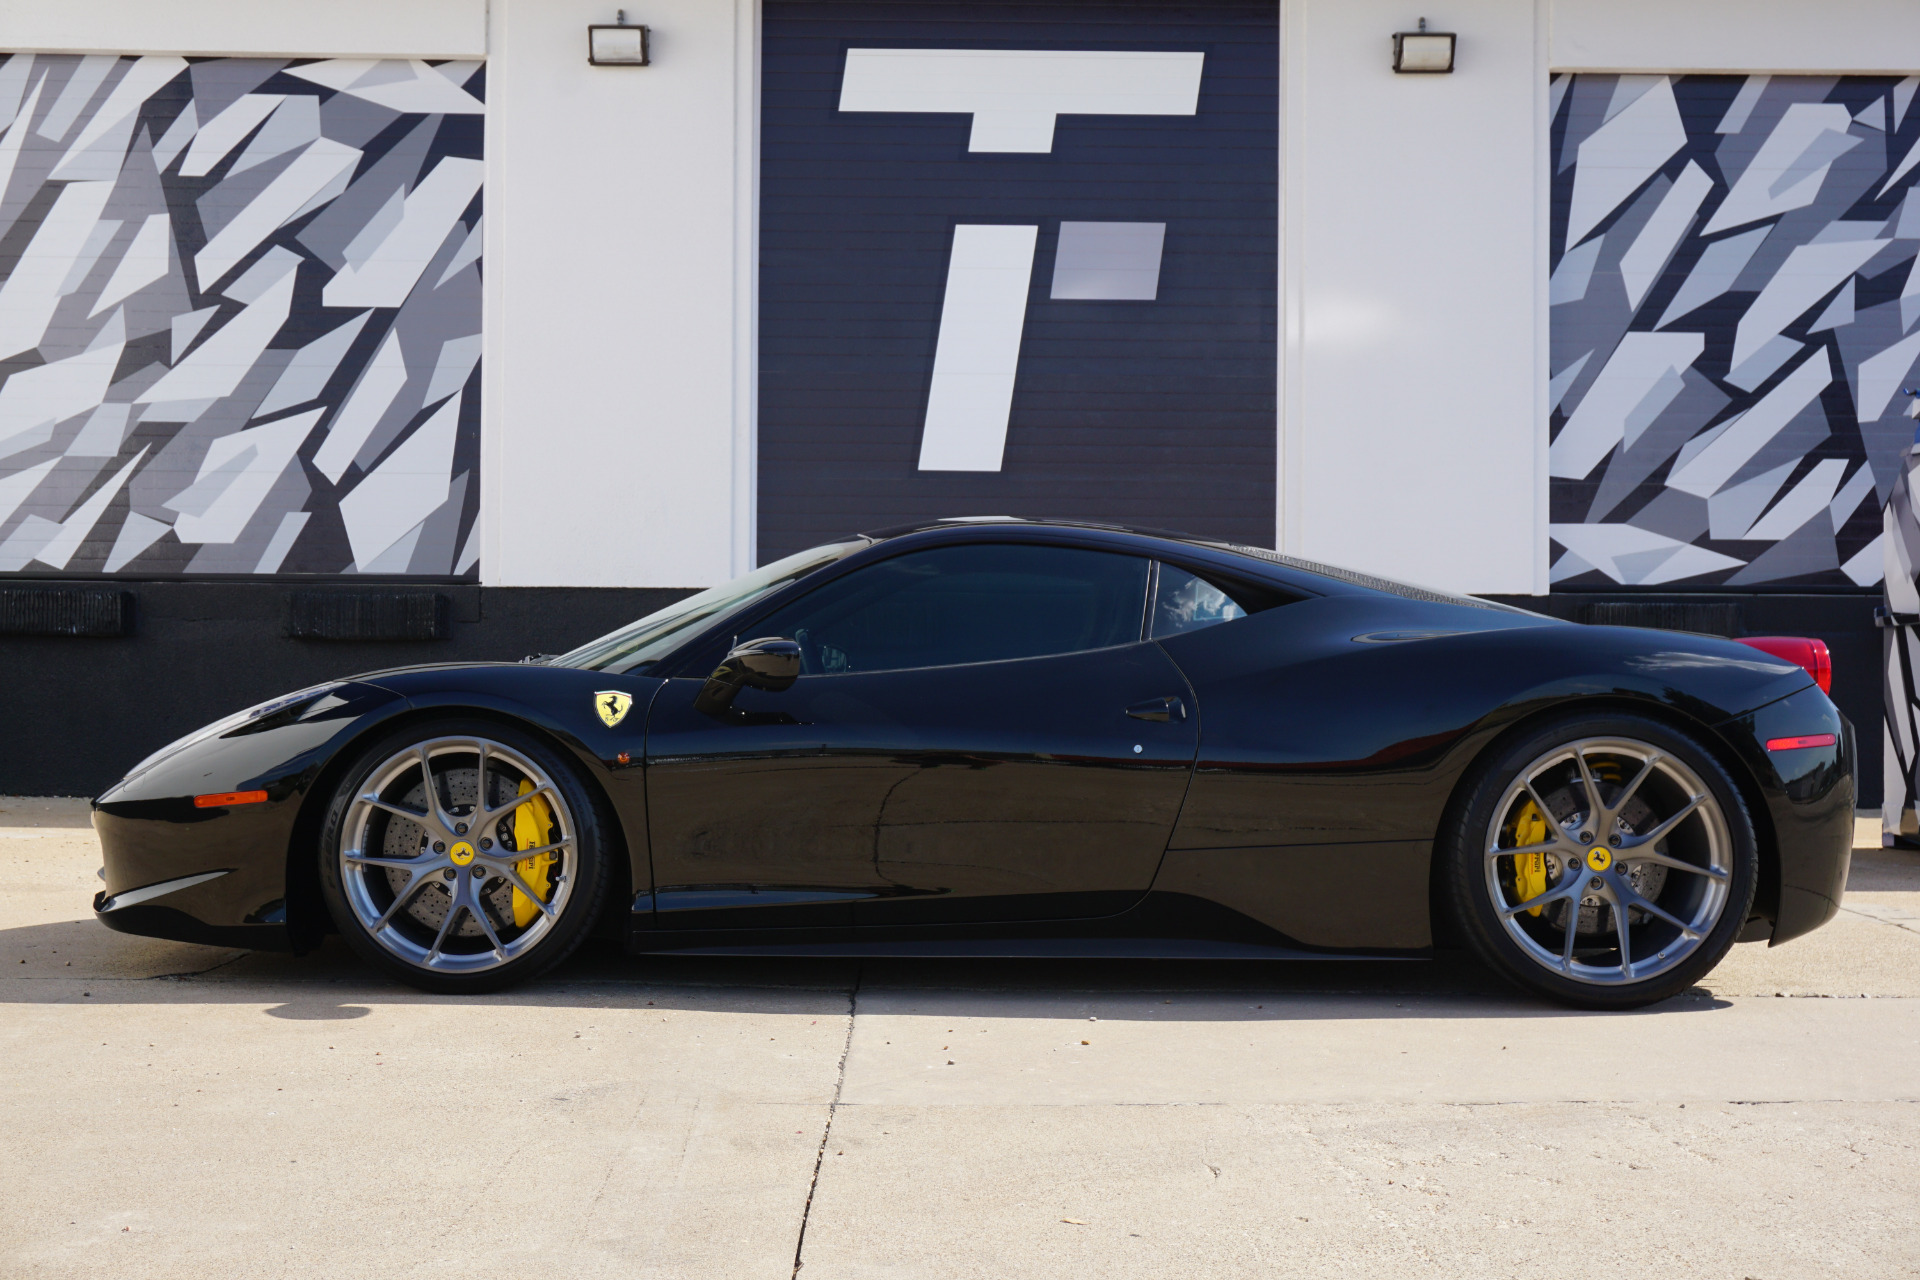 Used 2011 Ferrari 458 Italia For Sale 169900 Tactical